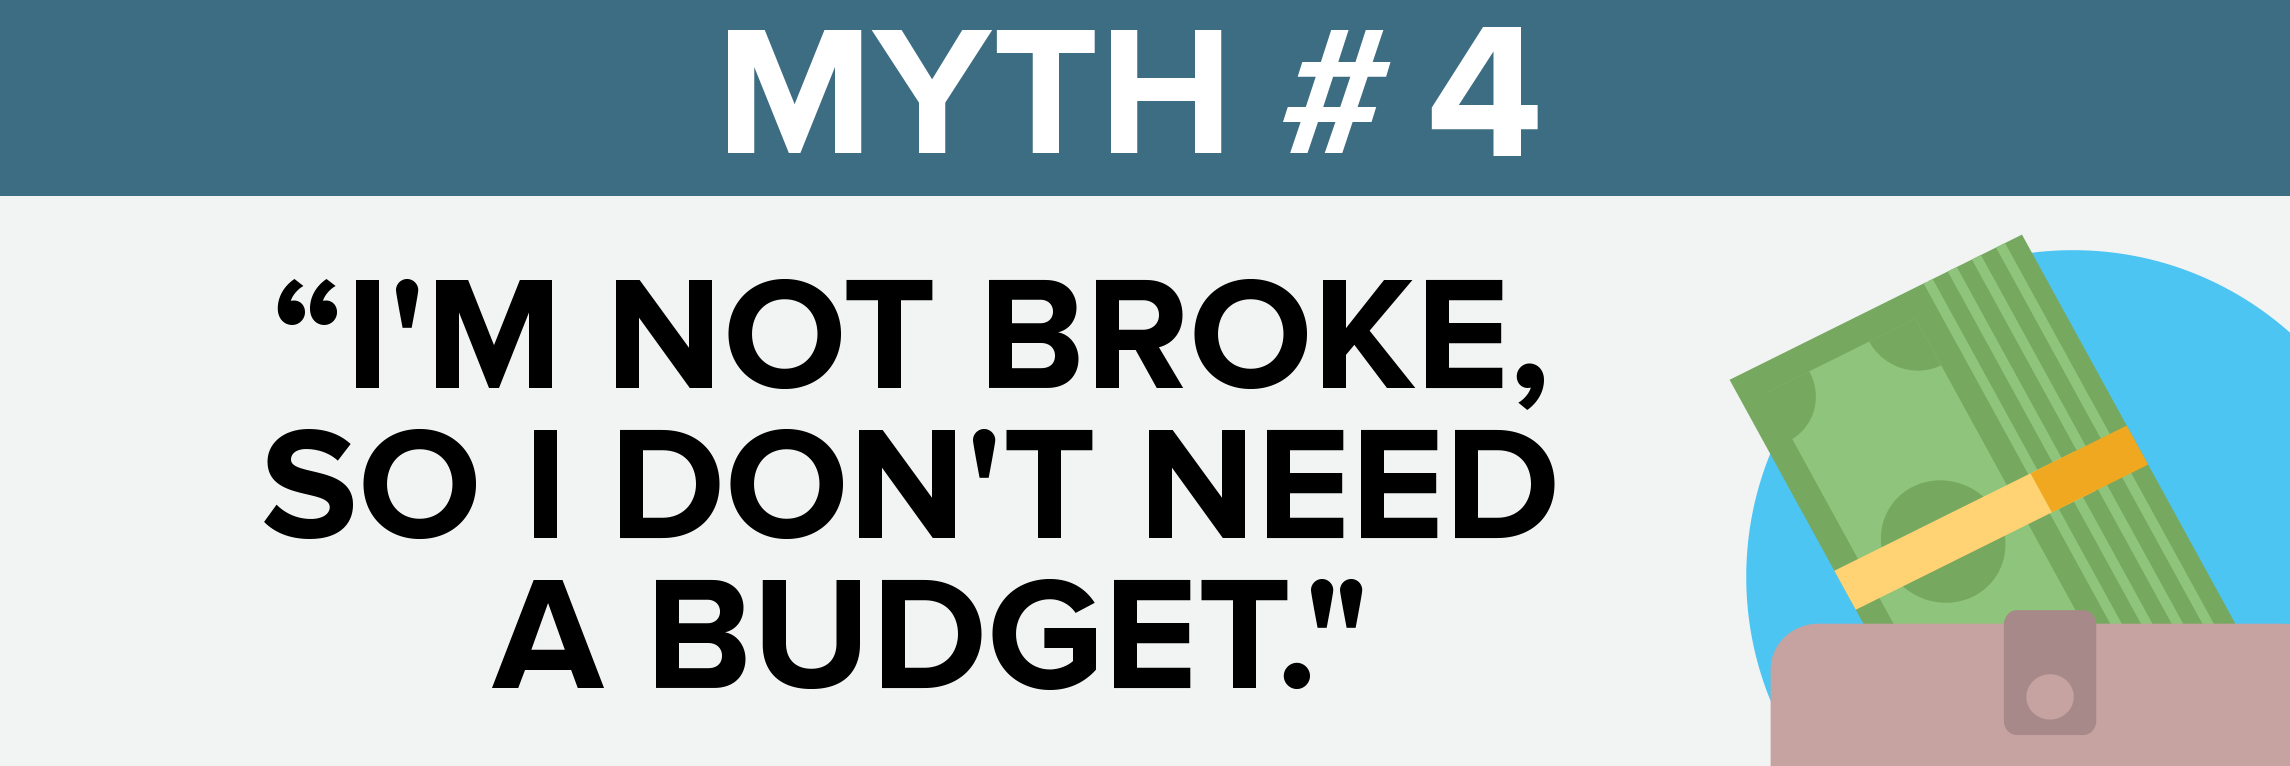 Myth #4 I'm not broke so I don't need a budget